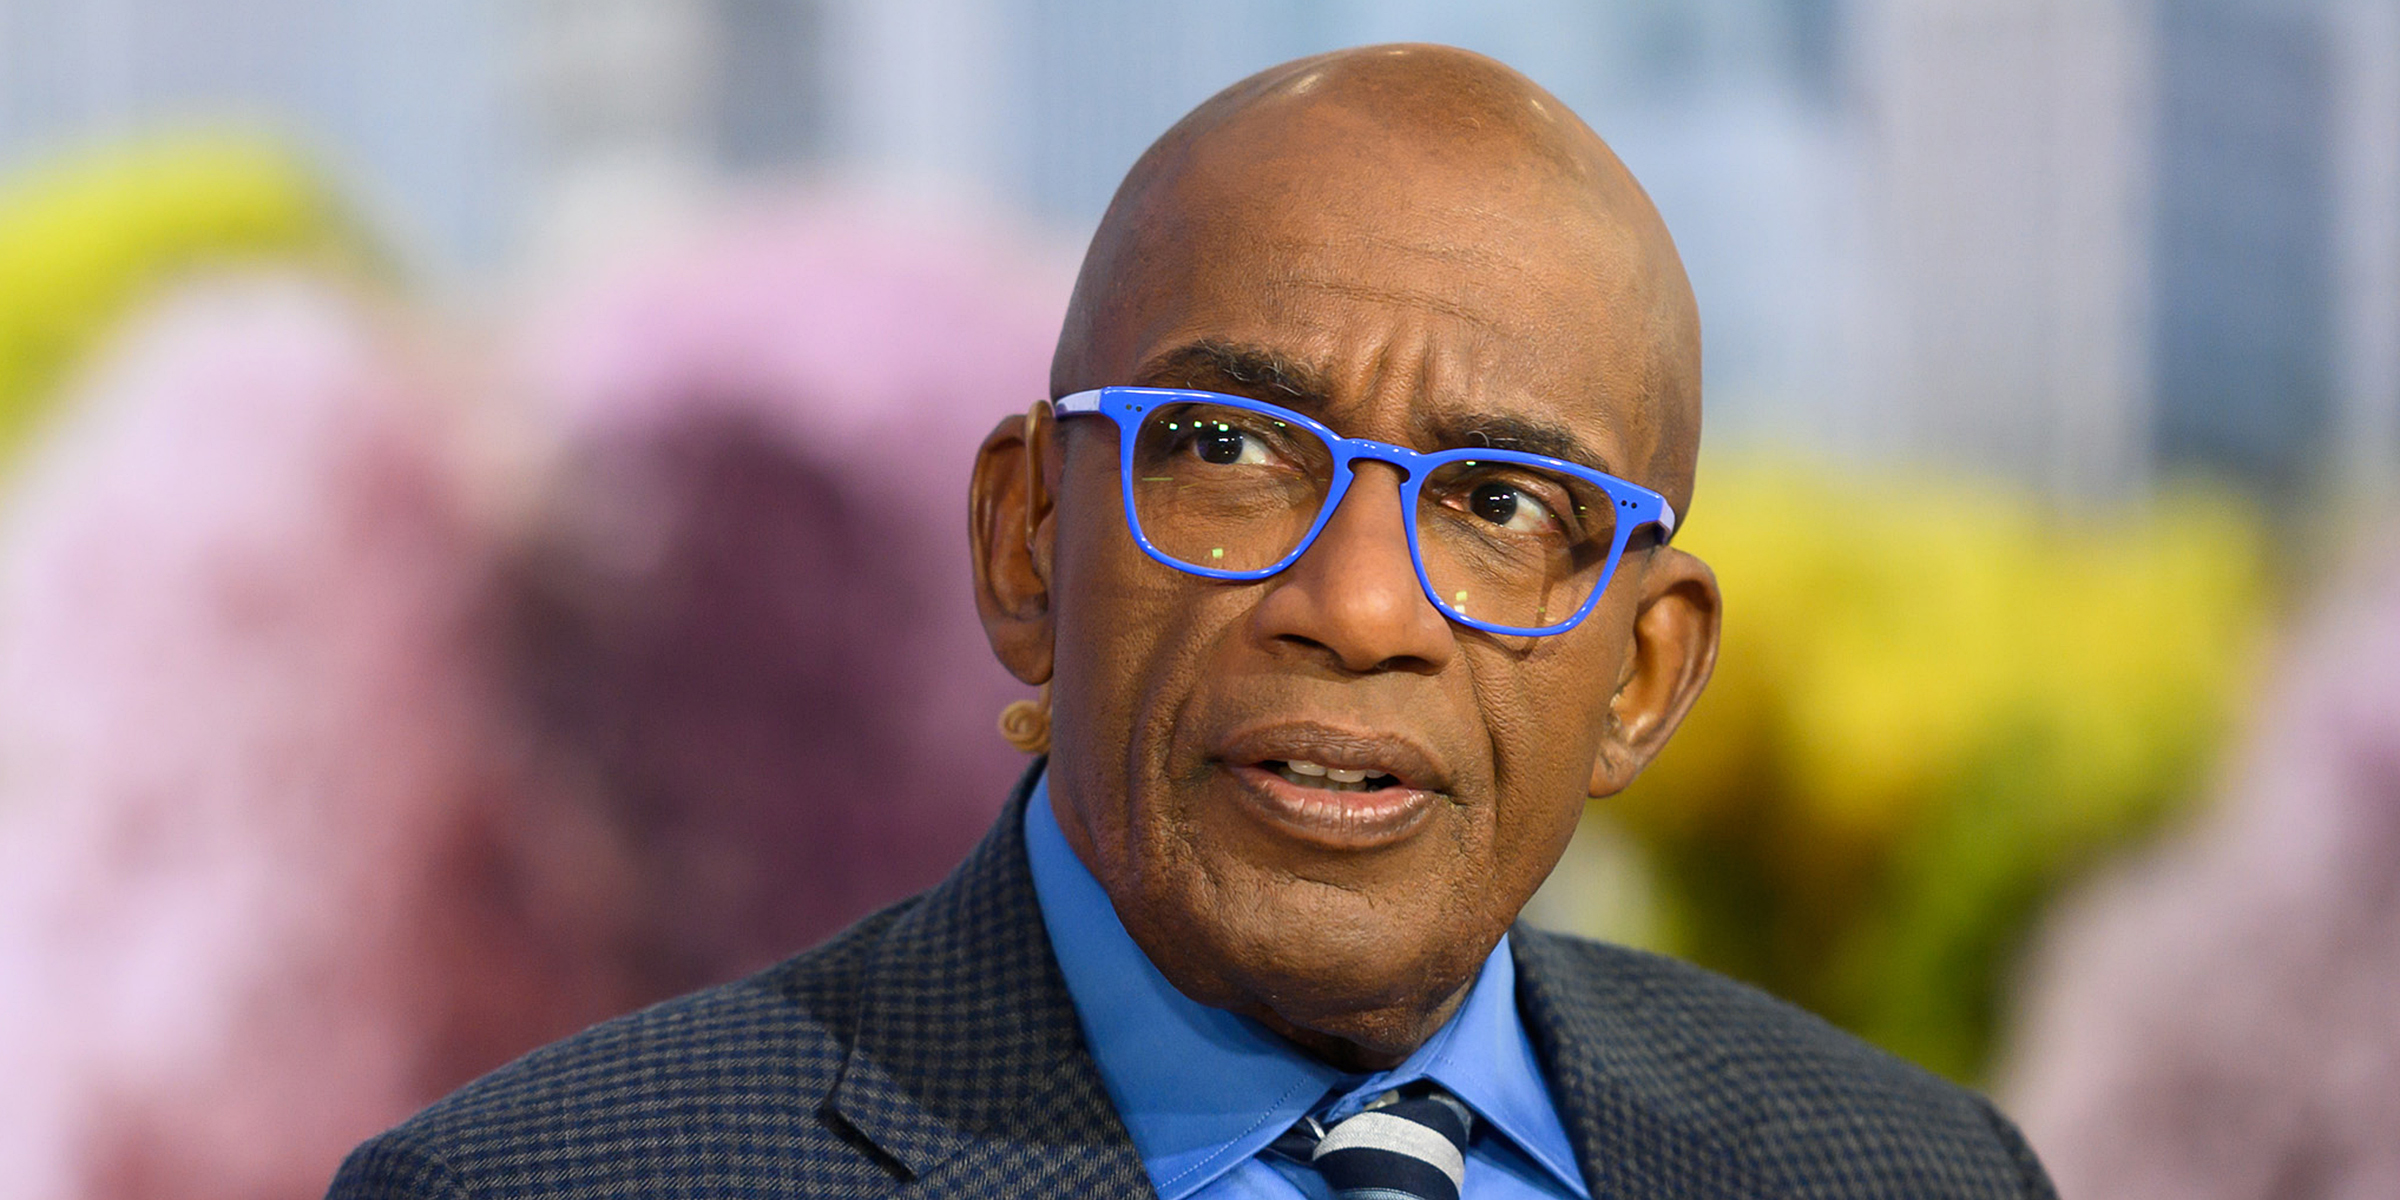 Al Roker Reveals Prostate Cancer News